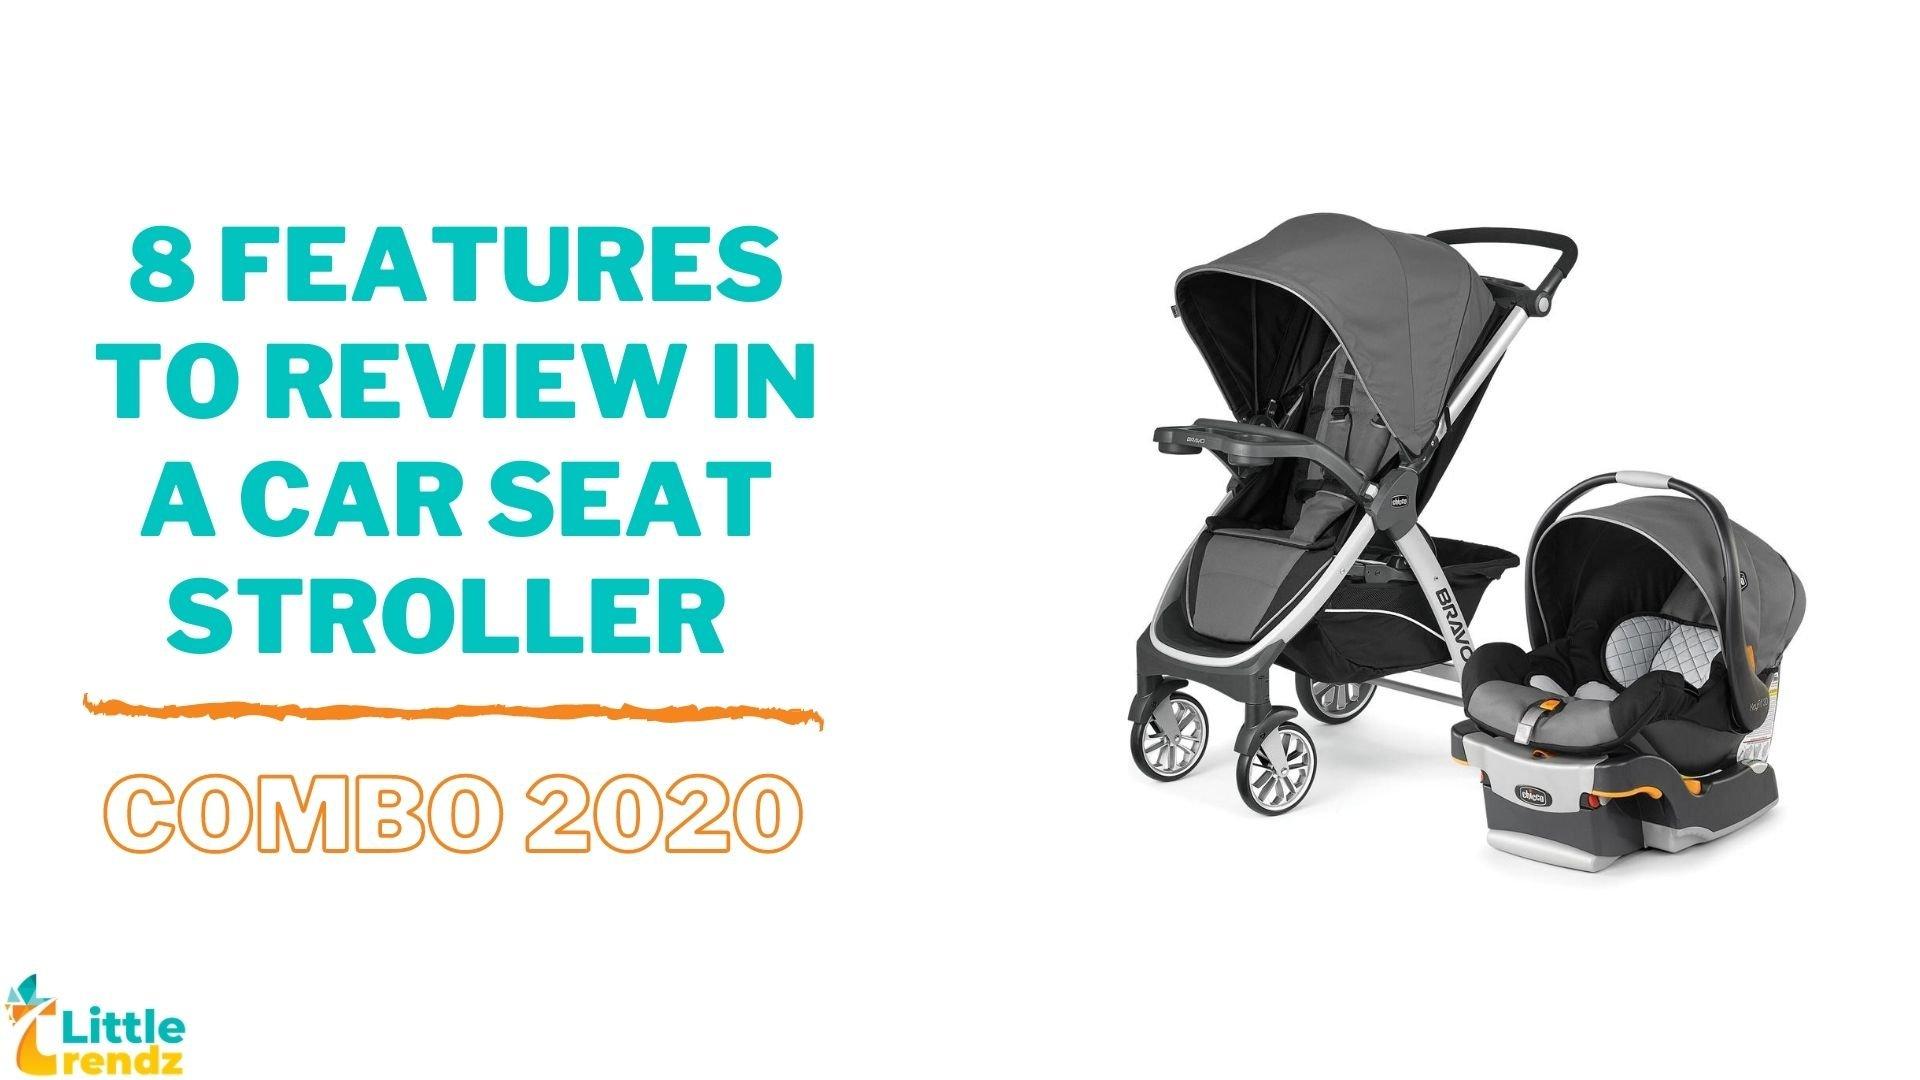 8 Features to Review in the Car Seat Stroller Combo 2020